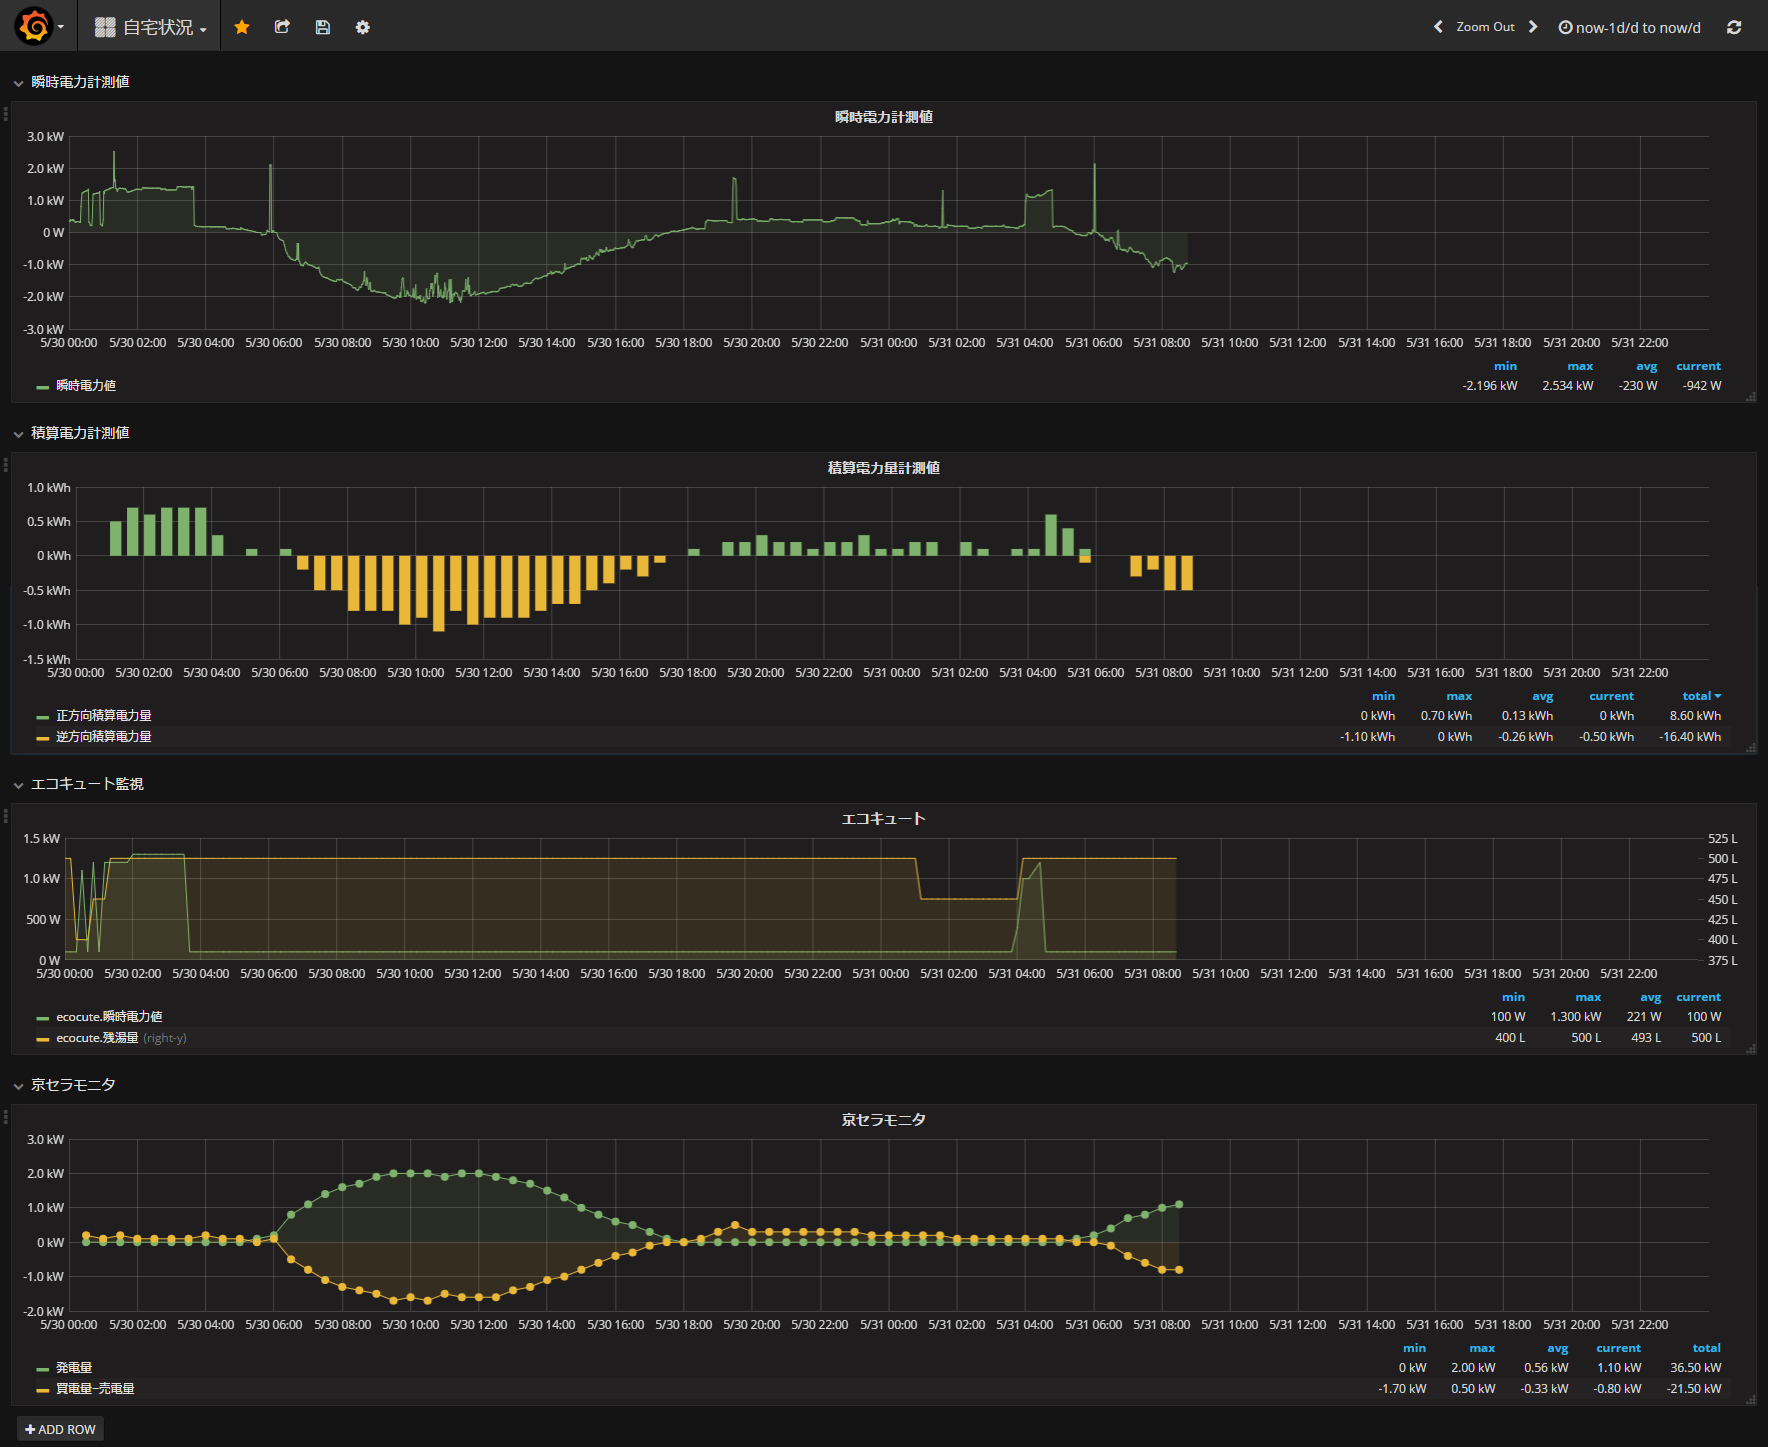 FireShot Capture 1 - Grafana - 自宅状況_ - http___katsumin.tk_3000_dashboard_db_zi-zhai-zhuang-kuang.png